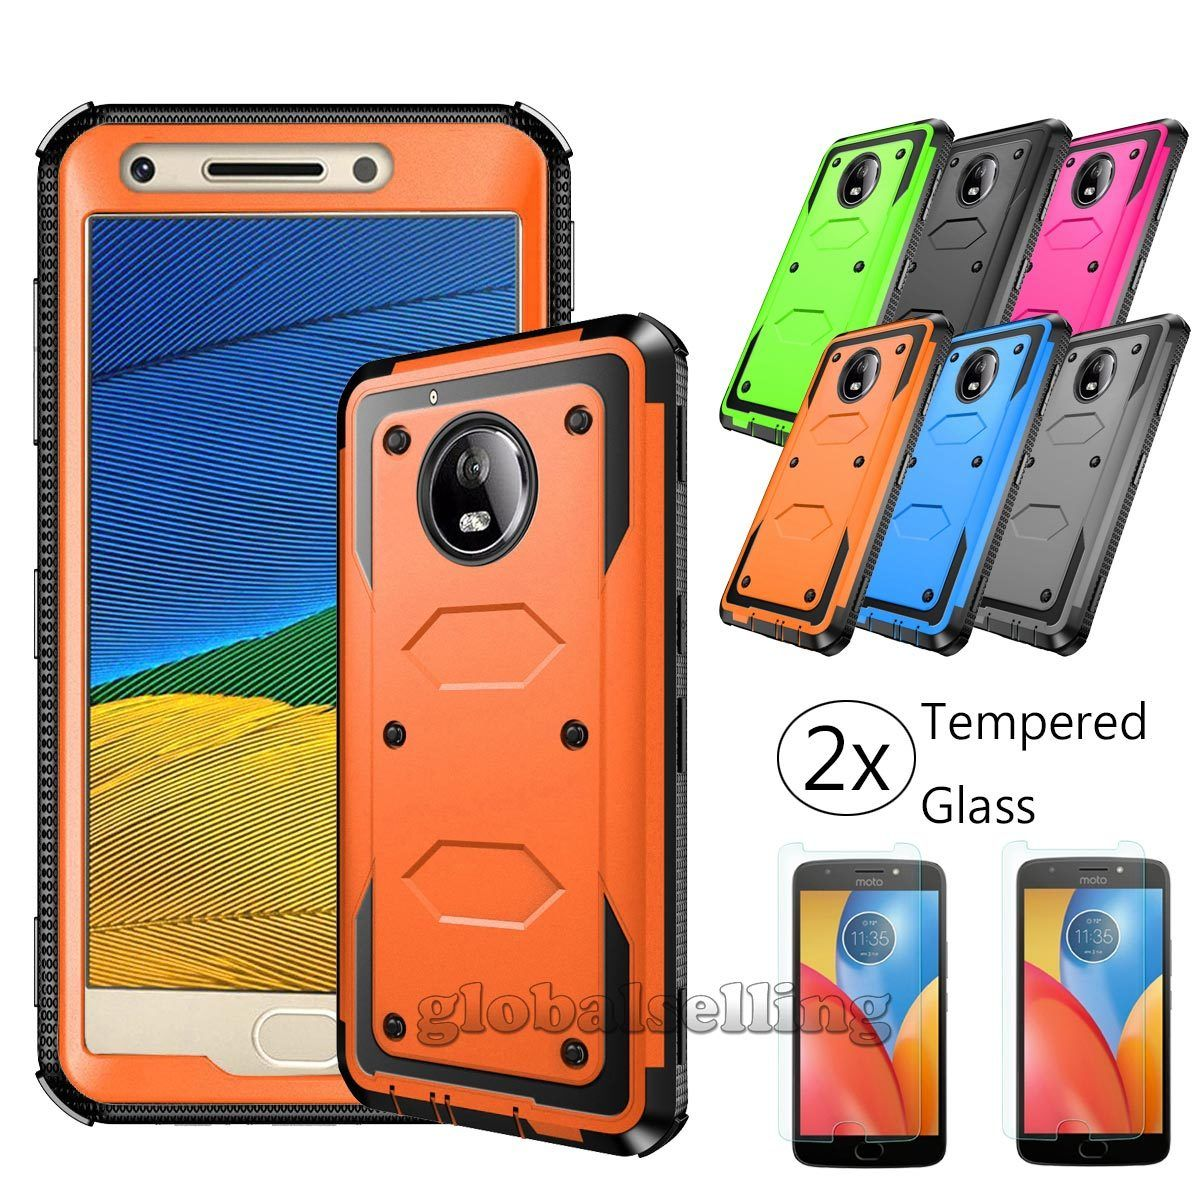 separation shoes 99d19 cb79f $9.99 - For Motorola Moto G5/E4 Plus/E4 Phone Case Cover+Tempered ...